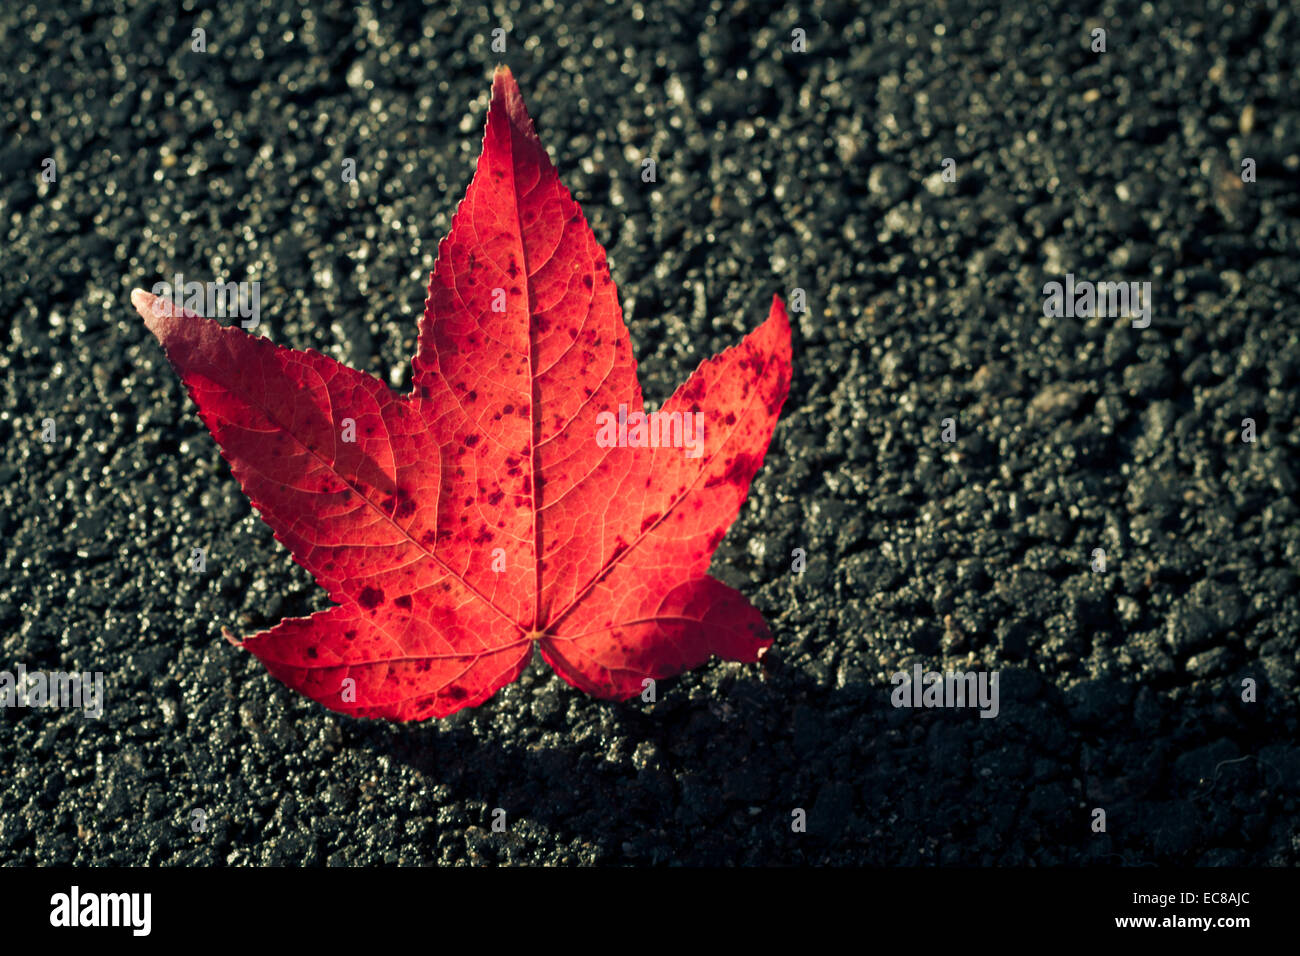 red leave on road - Stock Image